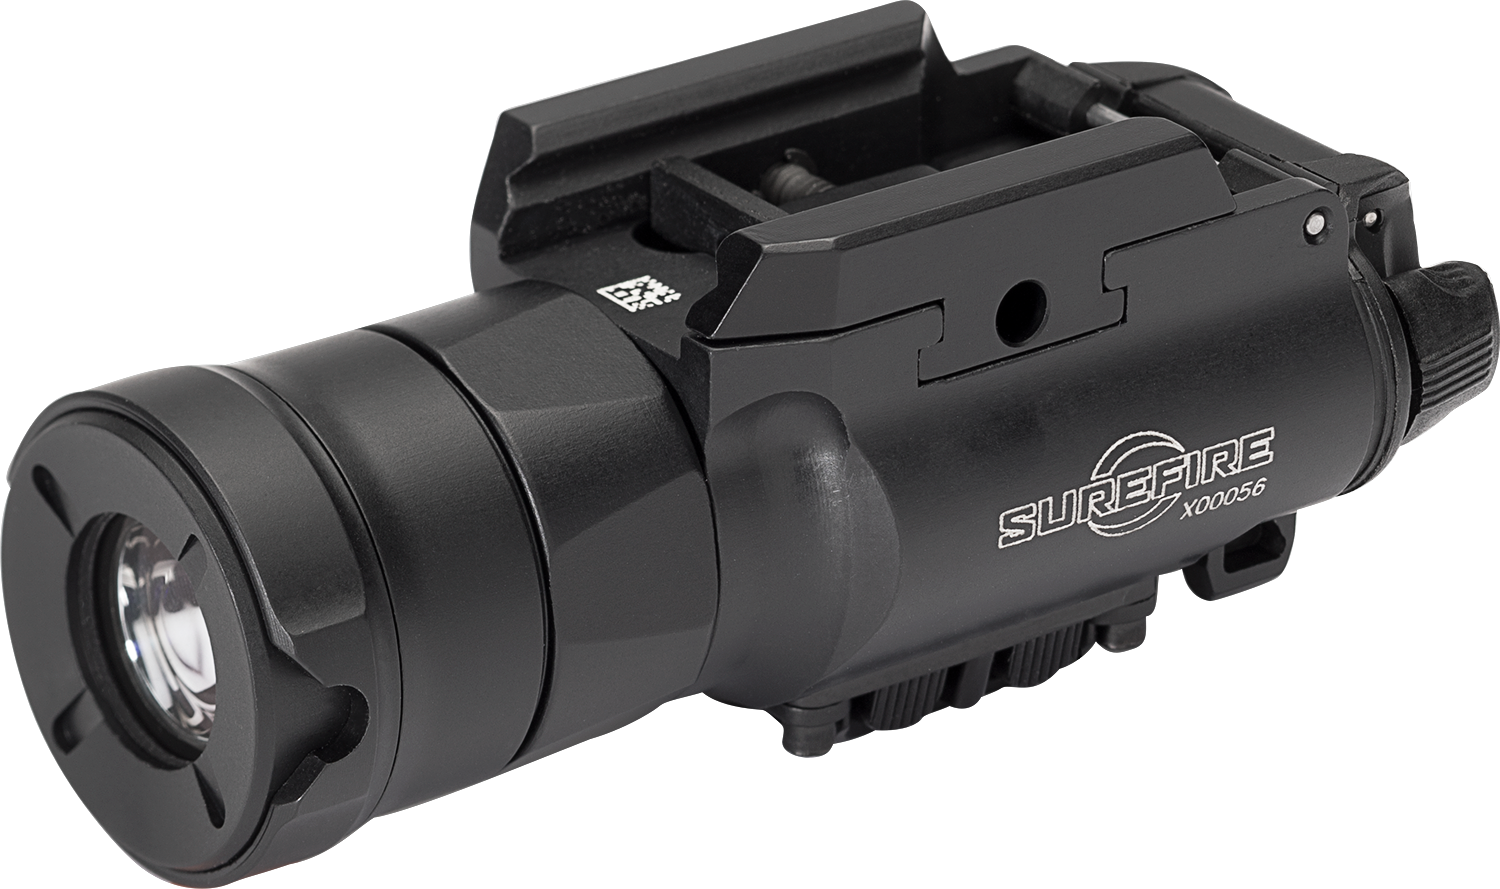 SureFire XH35 1000 Lumen for Dual Output LED WeaponLight for Lumen Masterfire Holster adb06e